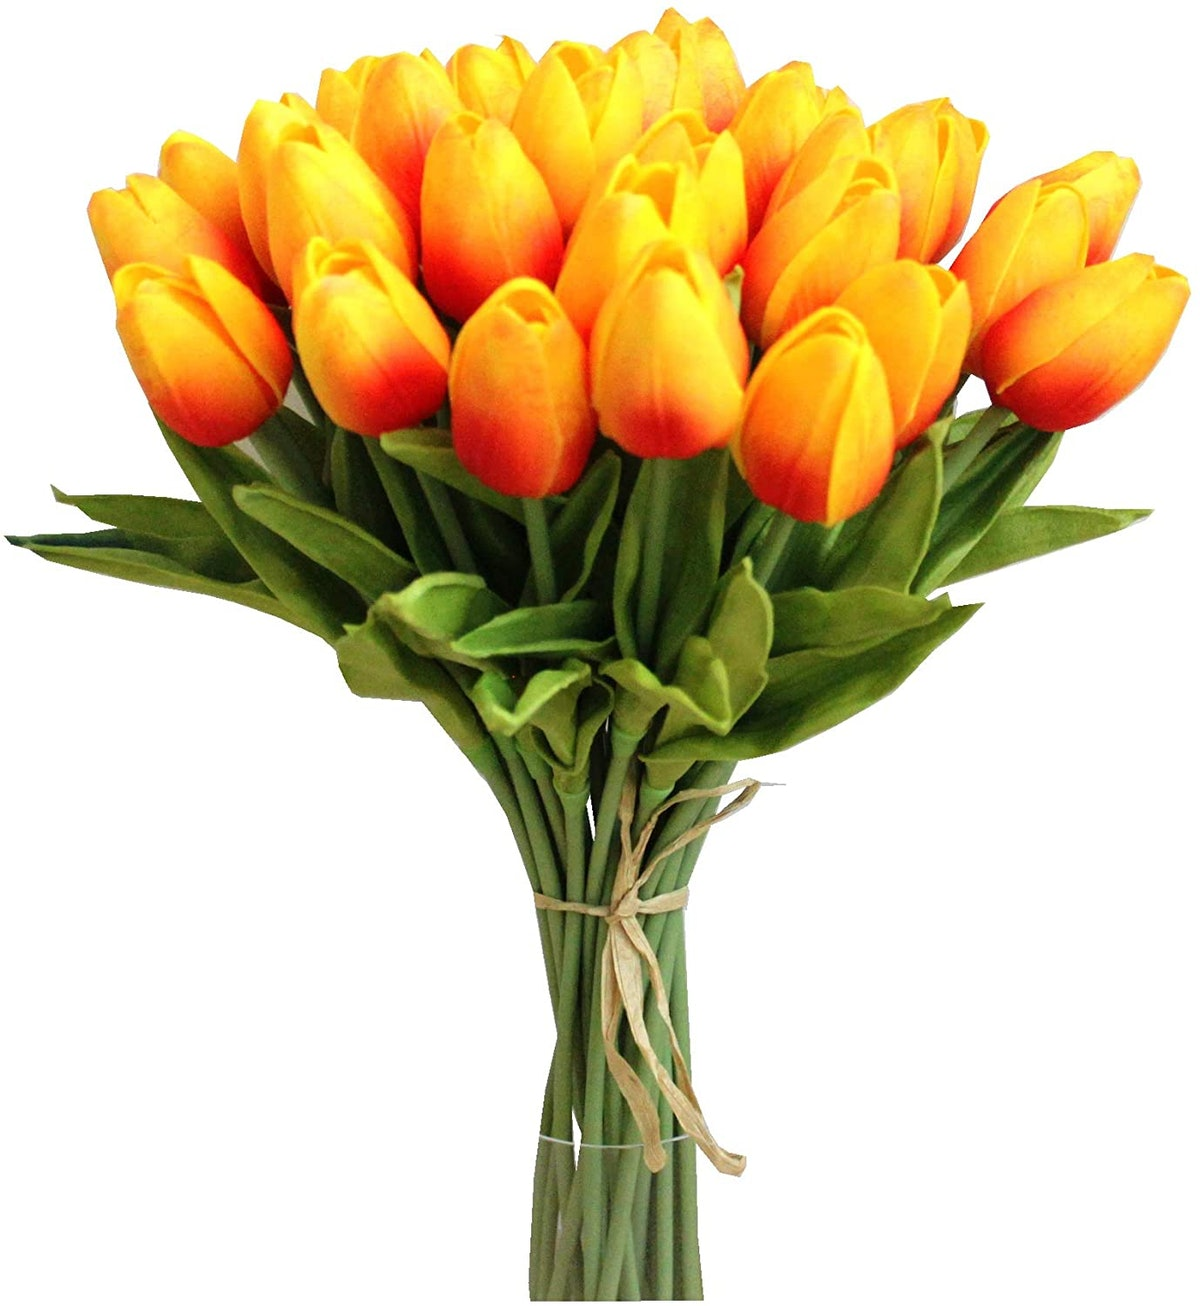 Mandy's Artificial Tulip Flowers (28-Pack)